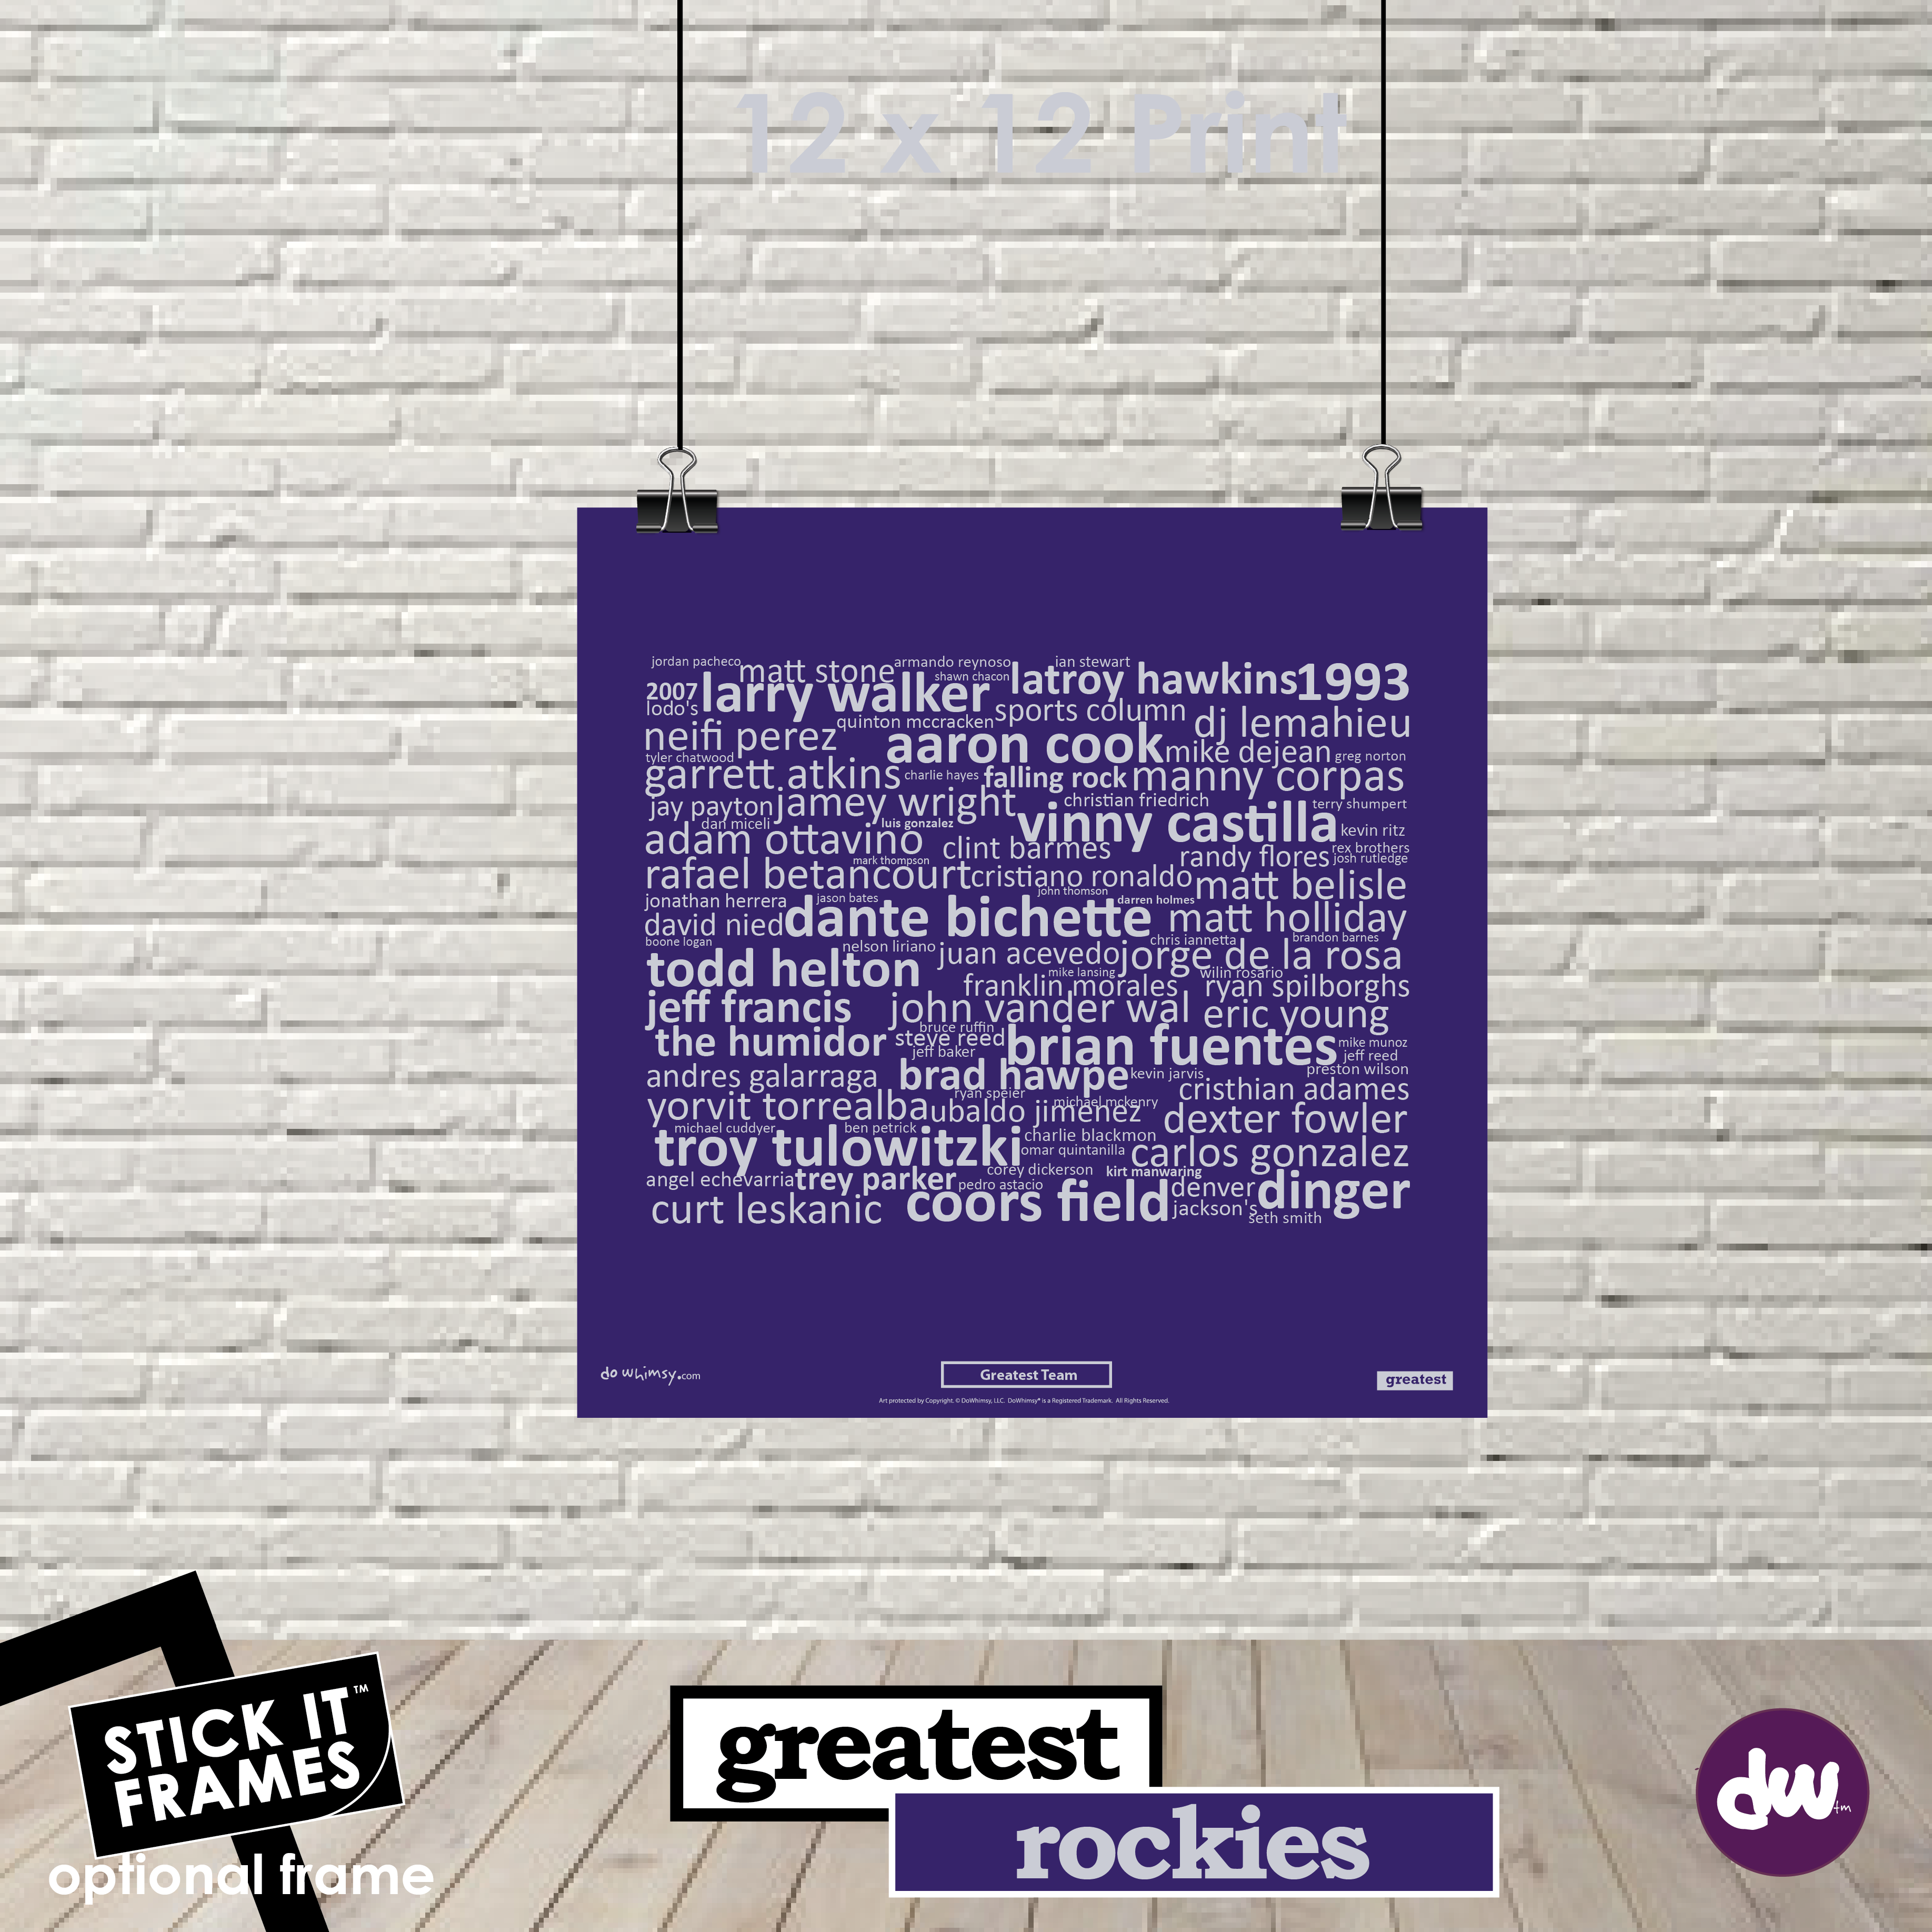 Greatest Colorado (Rockies) - All Products (Shirt, Art, Frames (R))